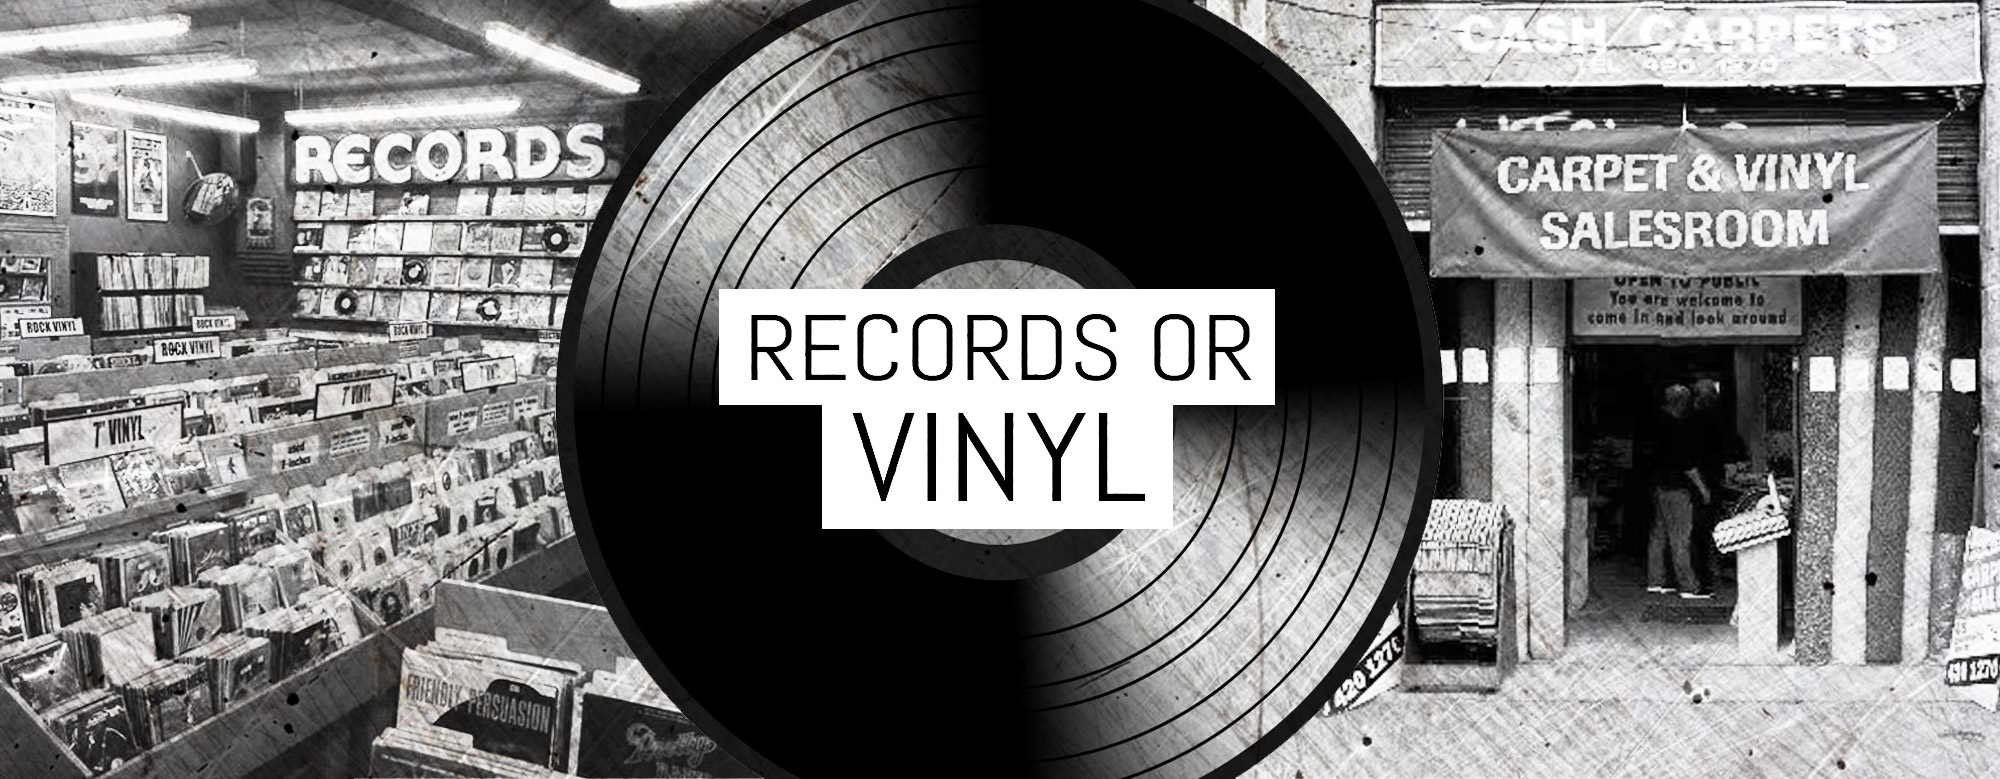 Records or Vinyl?